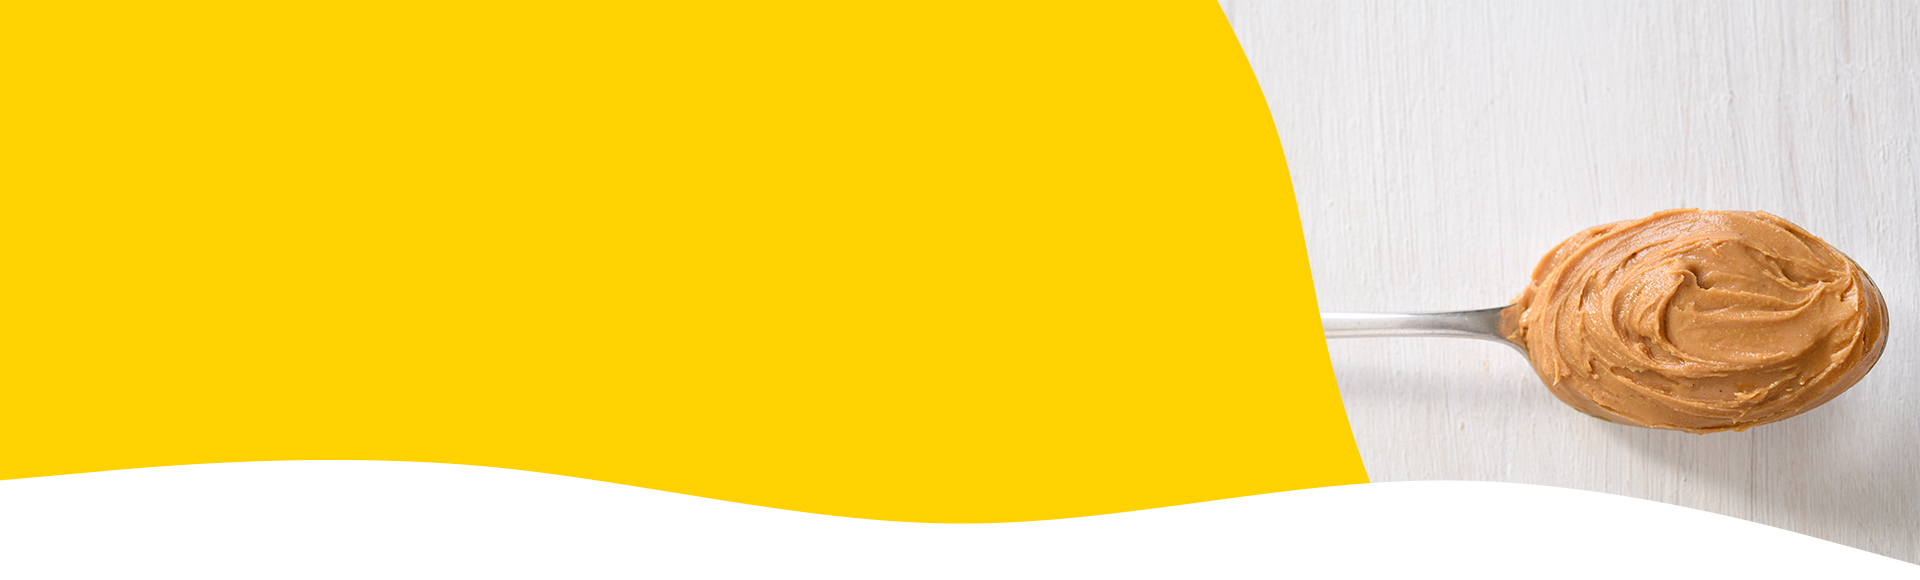 1920_Black_Cat_Recipe_Detail_Header